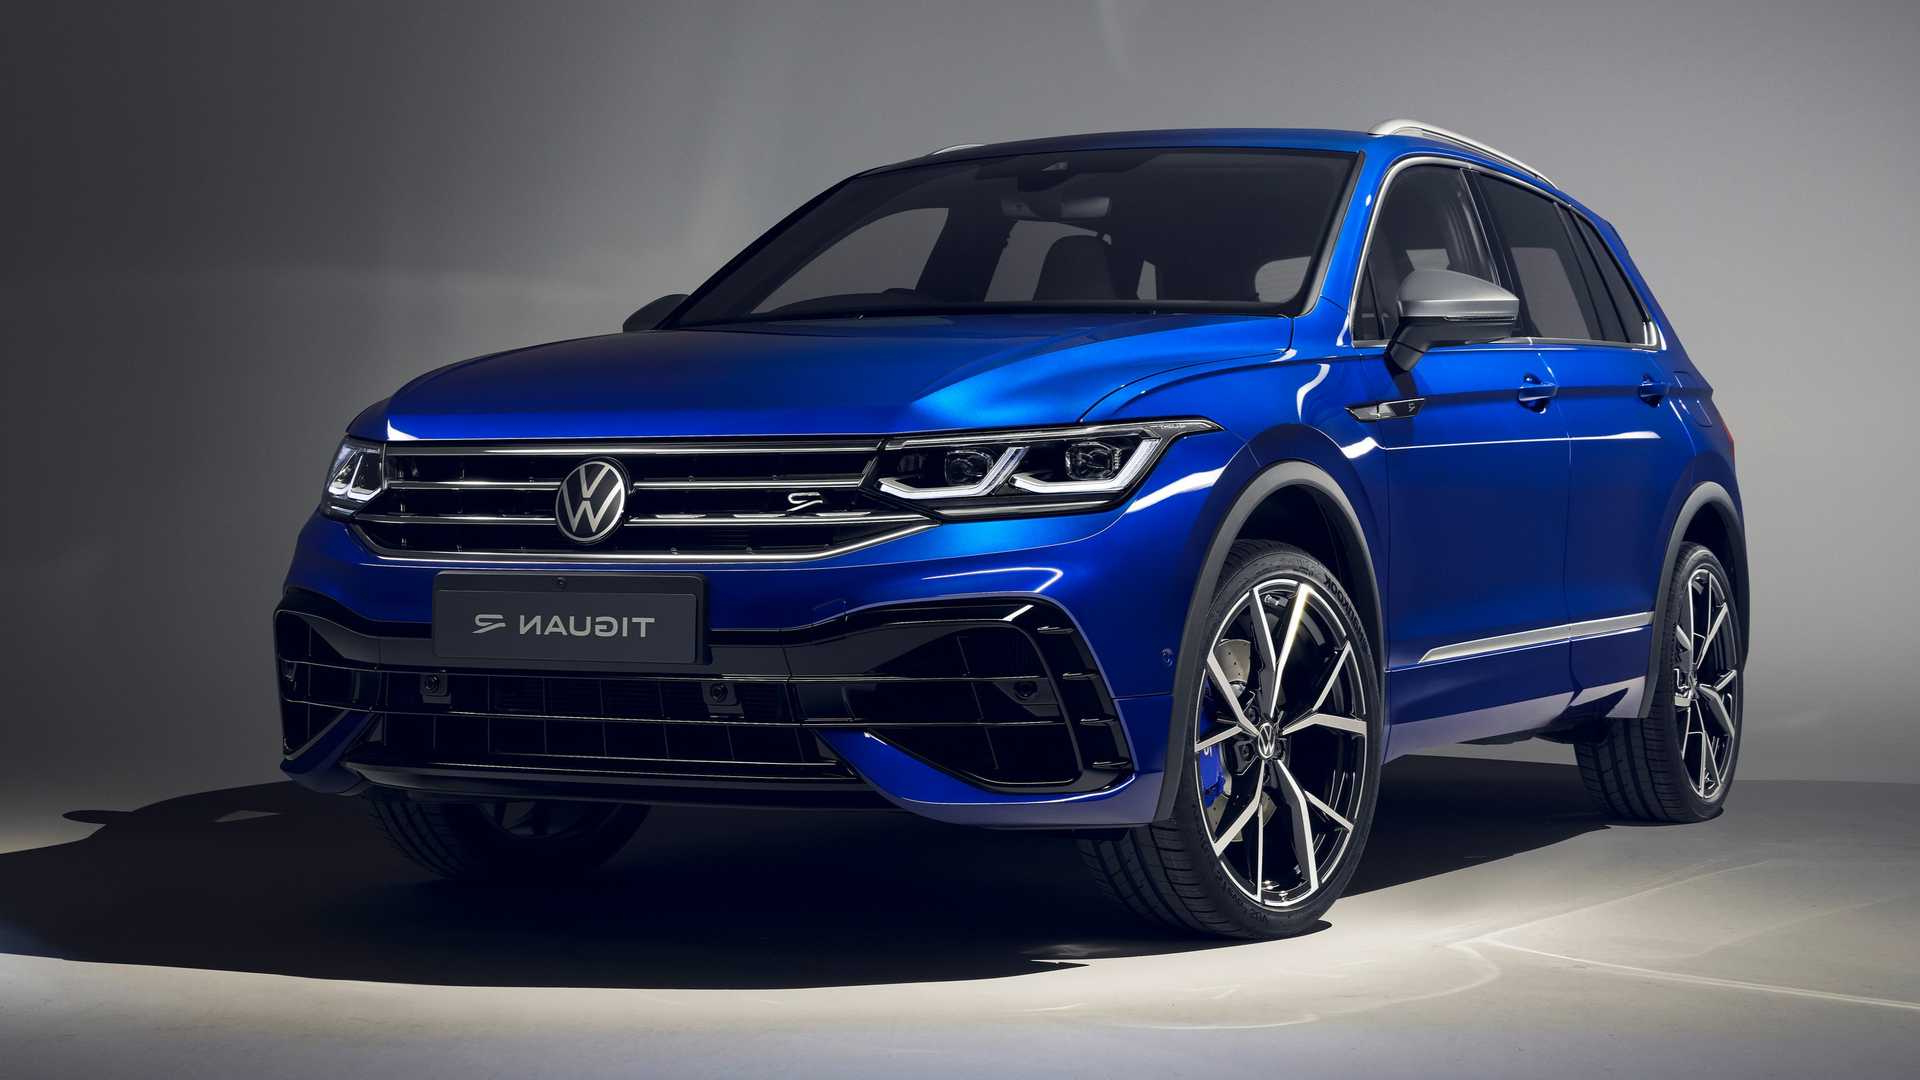 2021 Vw Tiguan Videos Show Extended Lineup With Ehybrid And